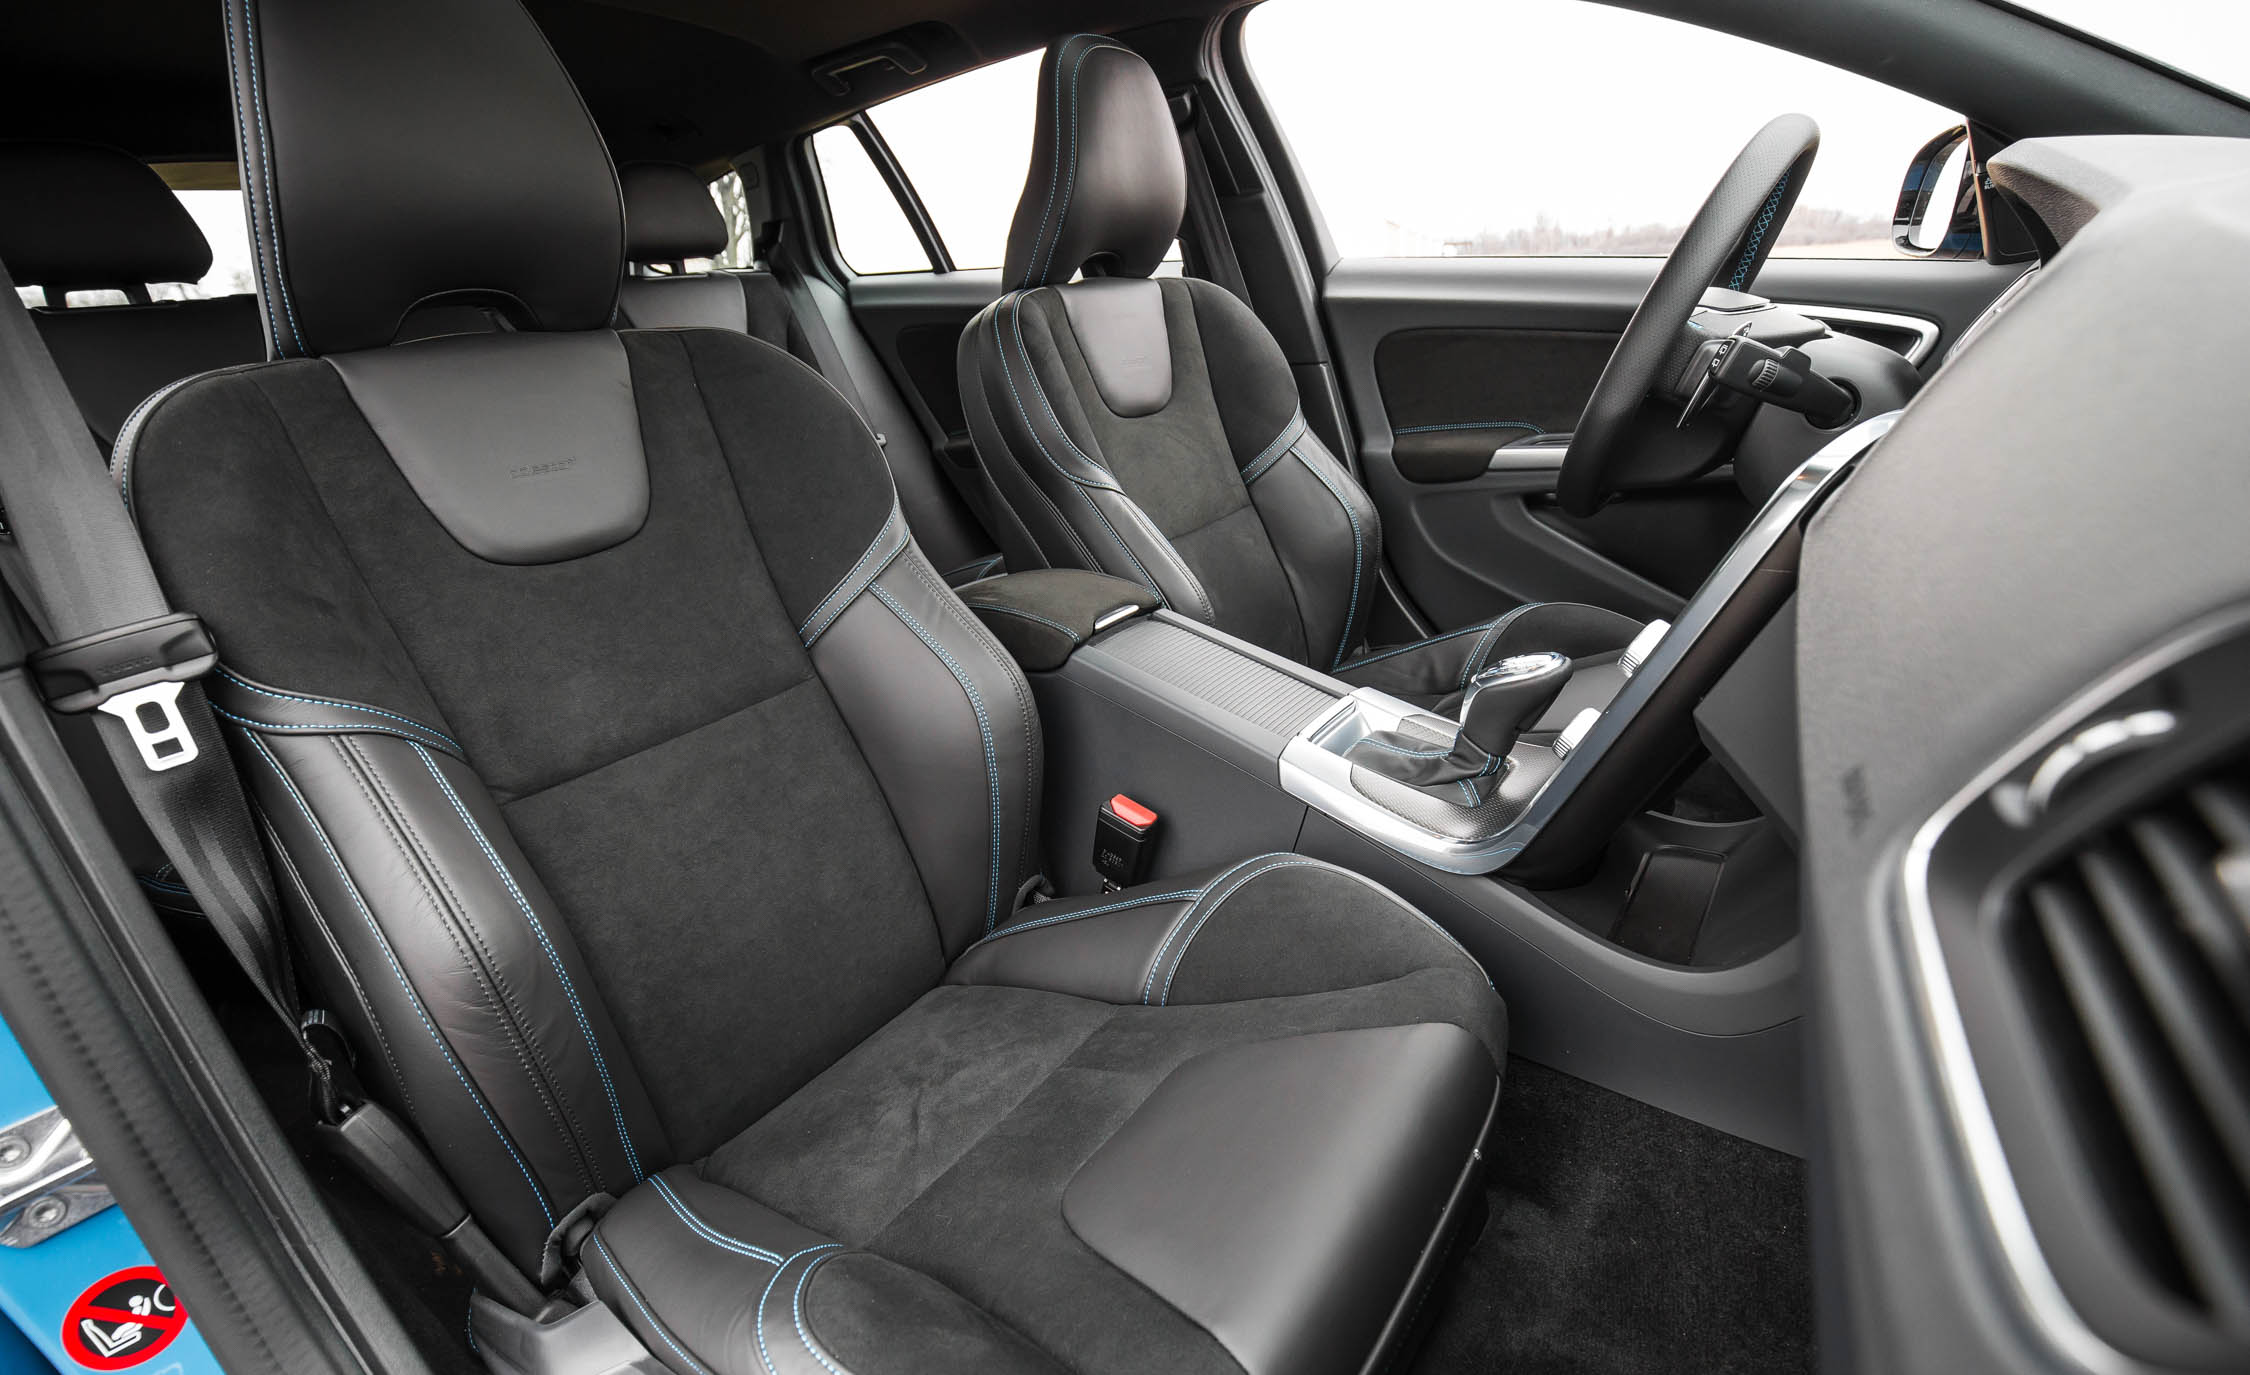 2017 Volvo V60 Polestar Interior Seats Front (View 45 of 53)